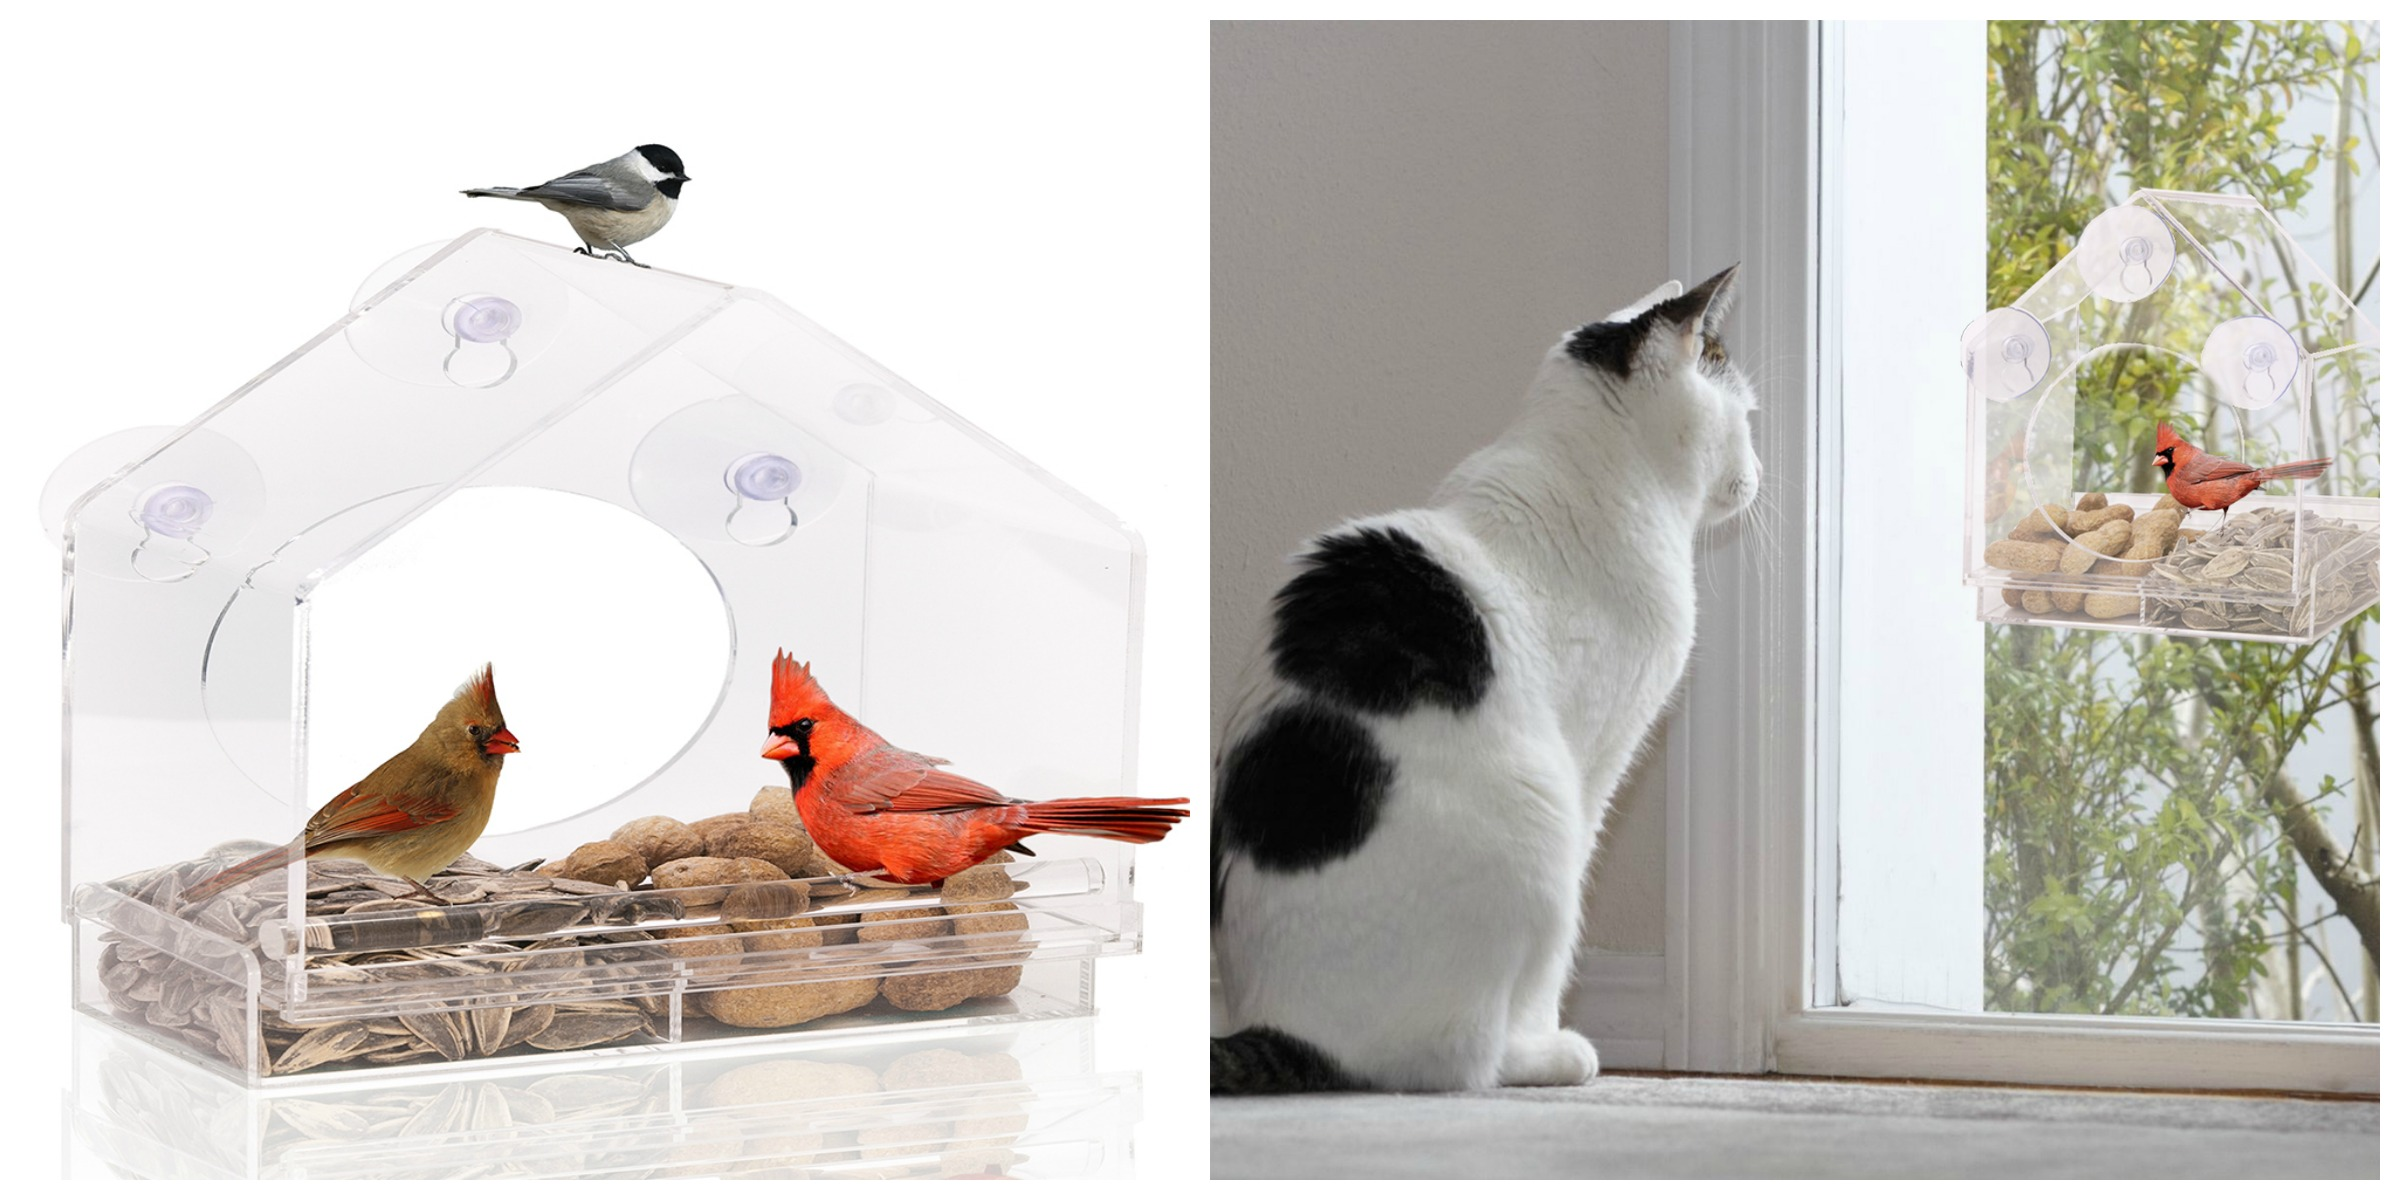 GIVEAWAY: Nature Anywhere's Window Bird Feeder Is Perfect Gift for Any Age